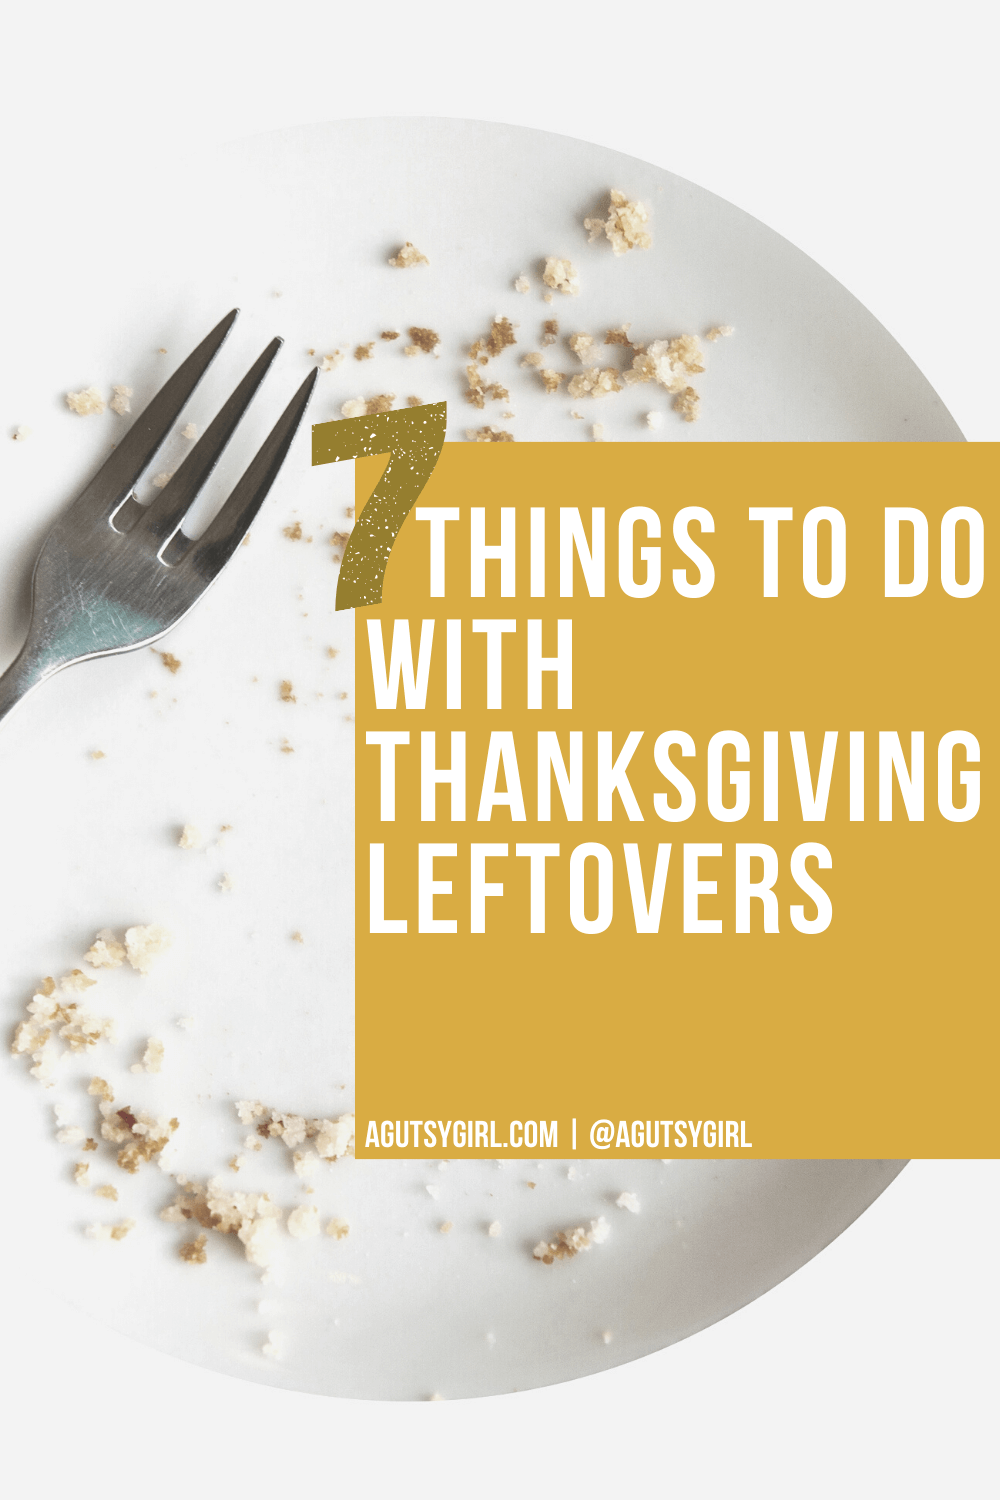 7 Things to Do with Thanksgiving Leftovers agutsygirl.com #thanksgiving #thanksgivingleftovers #glutenfree